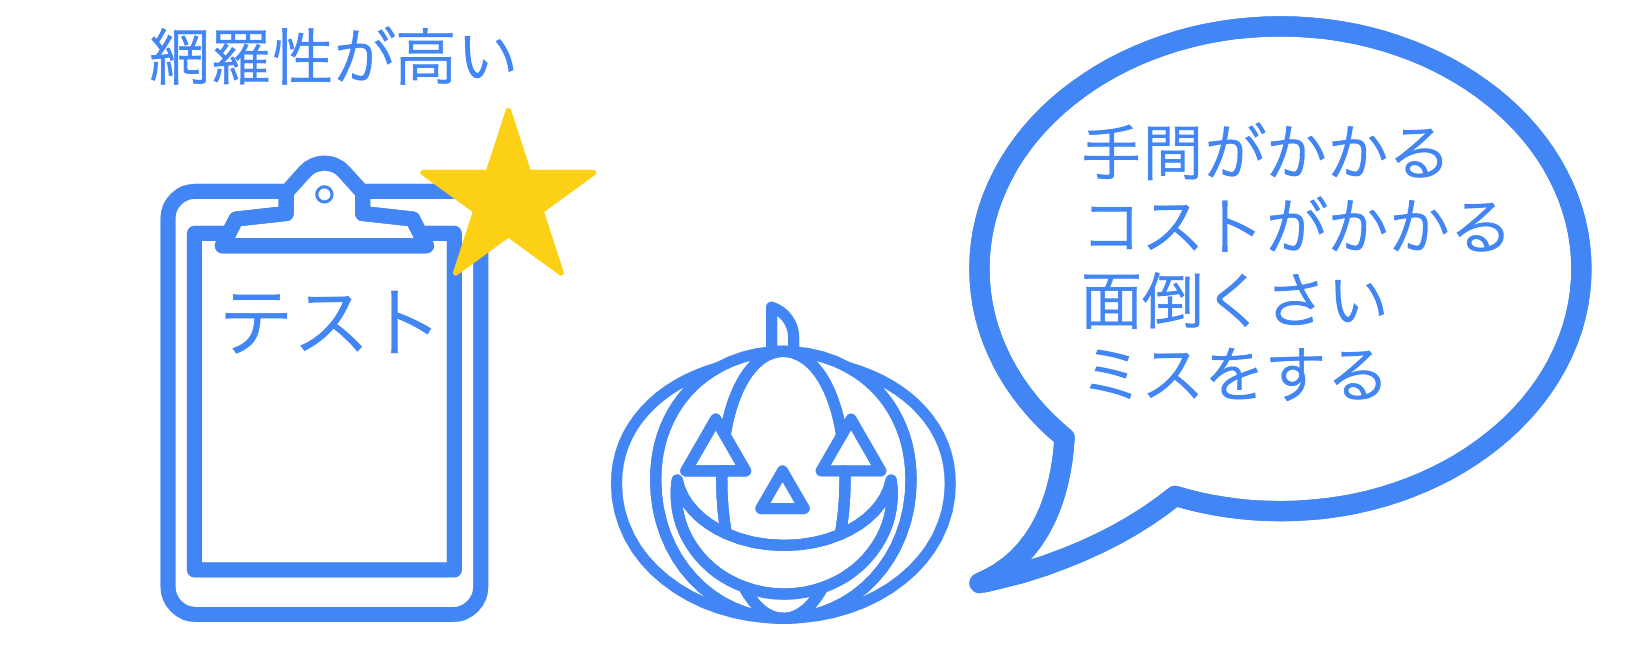 autodraw 2017_11_19 10_11_36.png